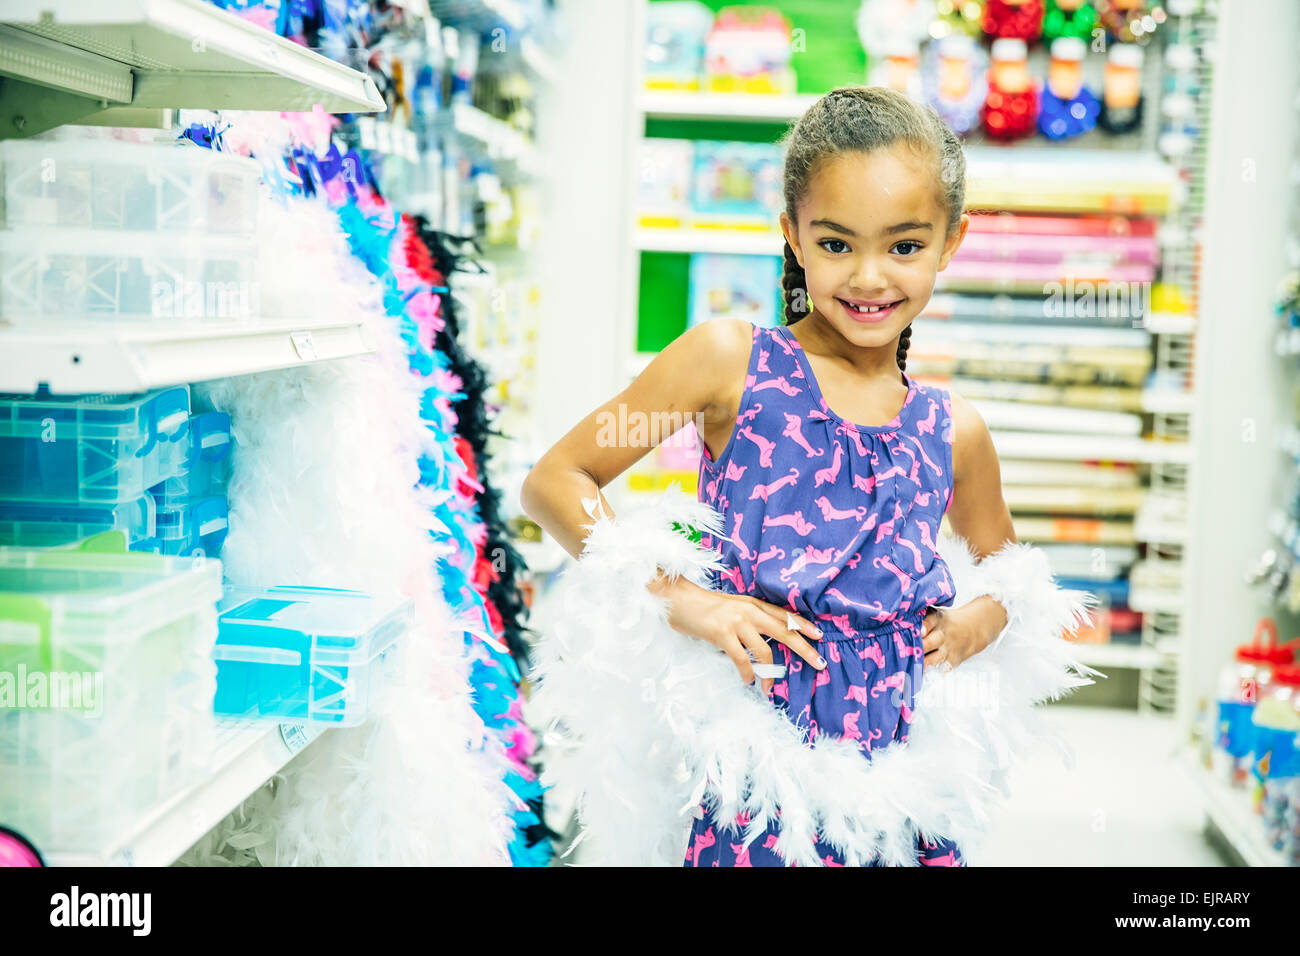 Mixed Race girl playing Dress-up in party store Banque D'Images